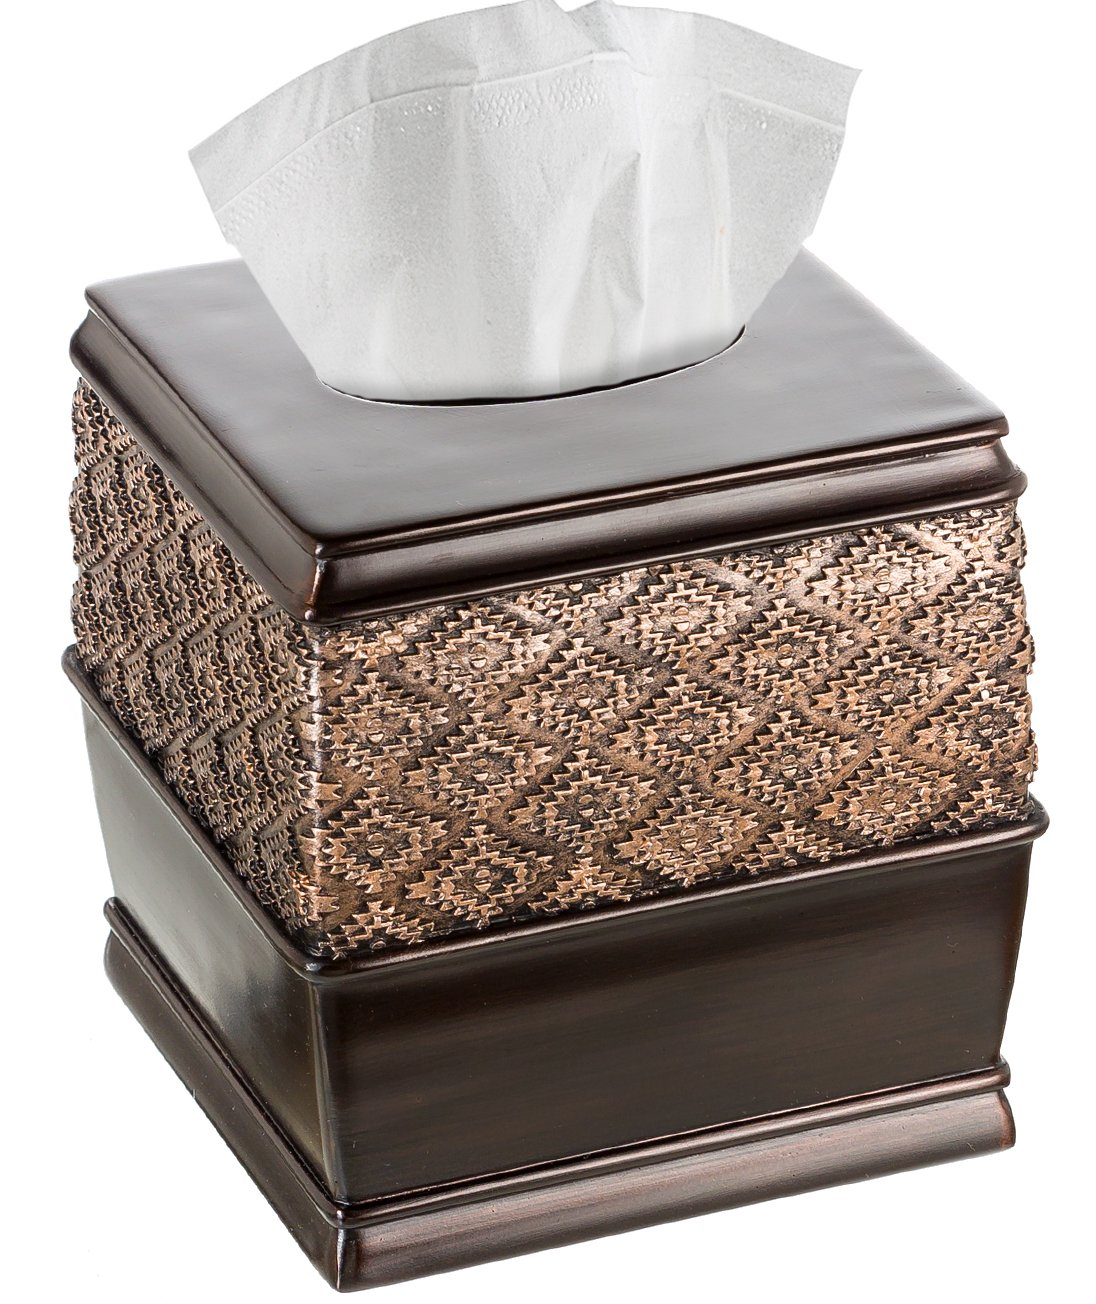 Creative Scents Dublin Square Tissue Box Cover (6